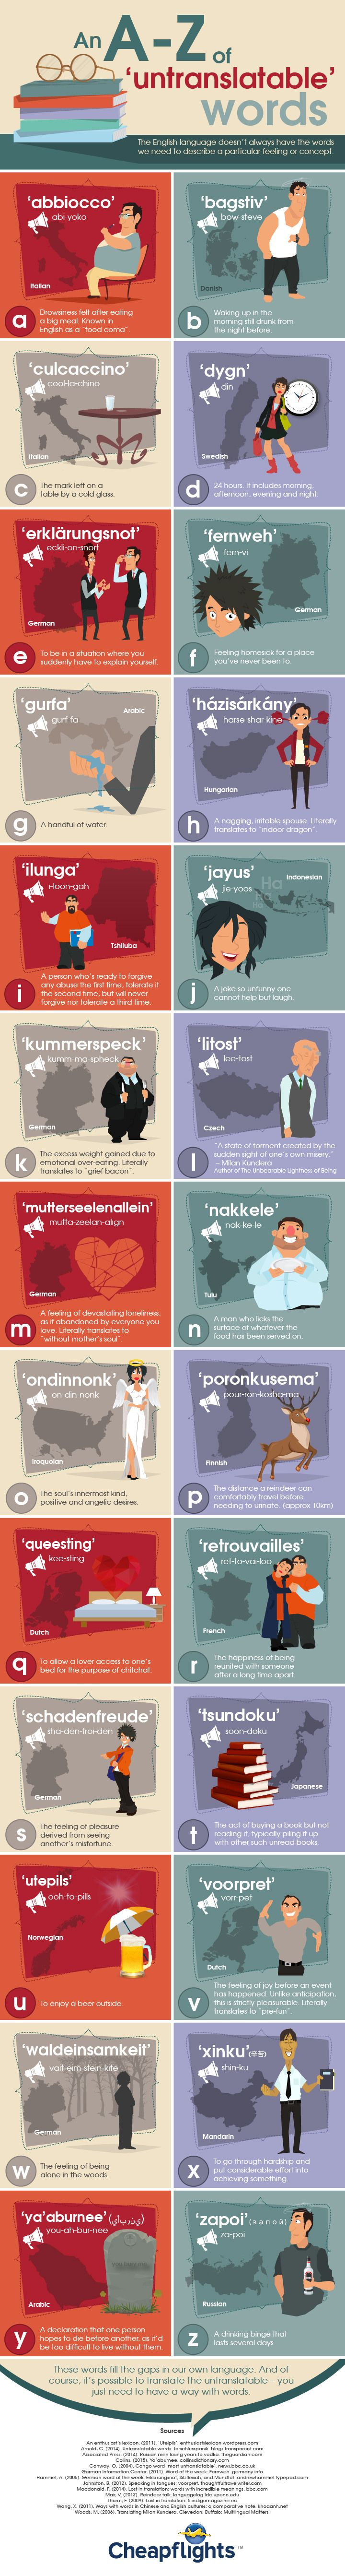 An A-Z of 'Untranslatable' Words